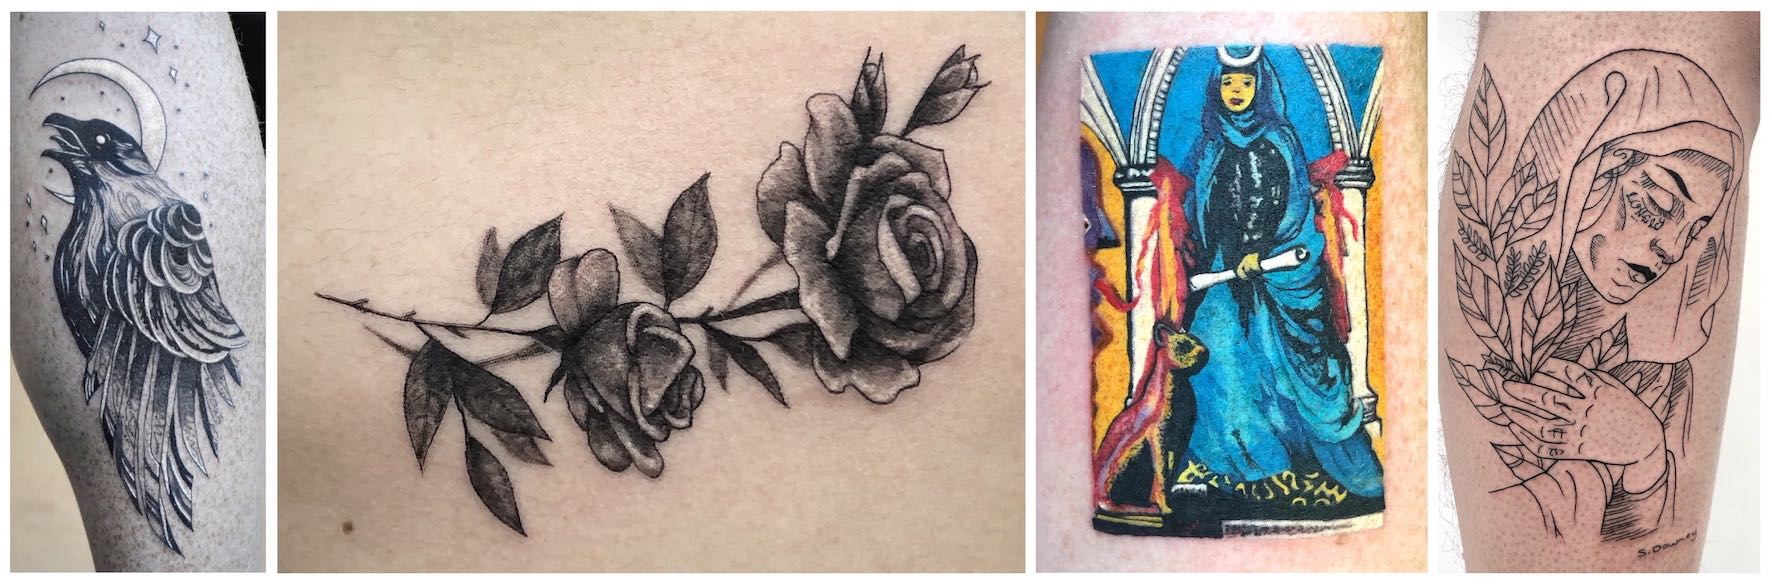 Detailed tattoos done by Shelby Downey